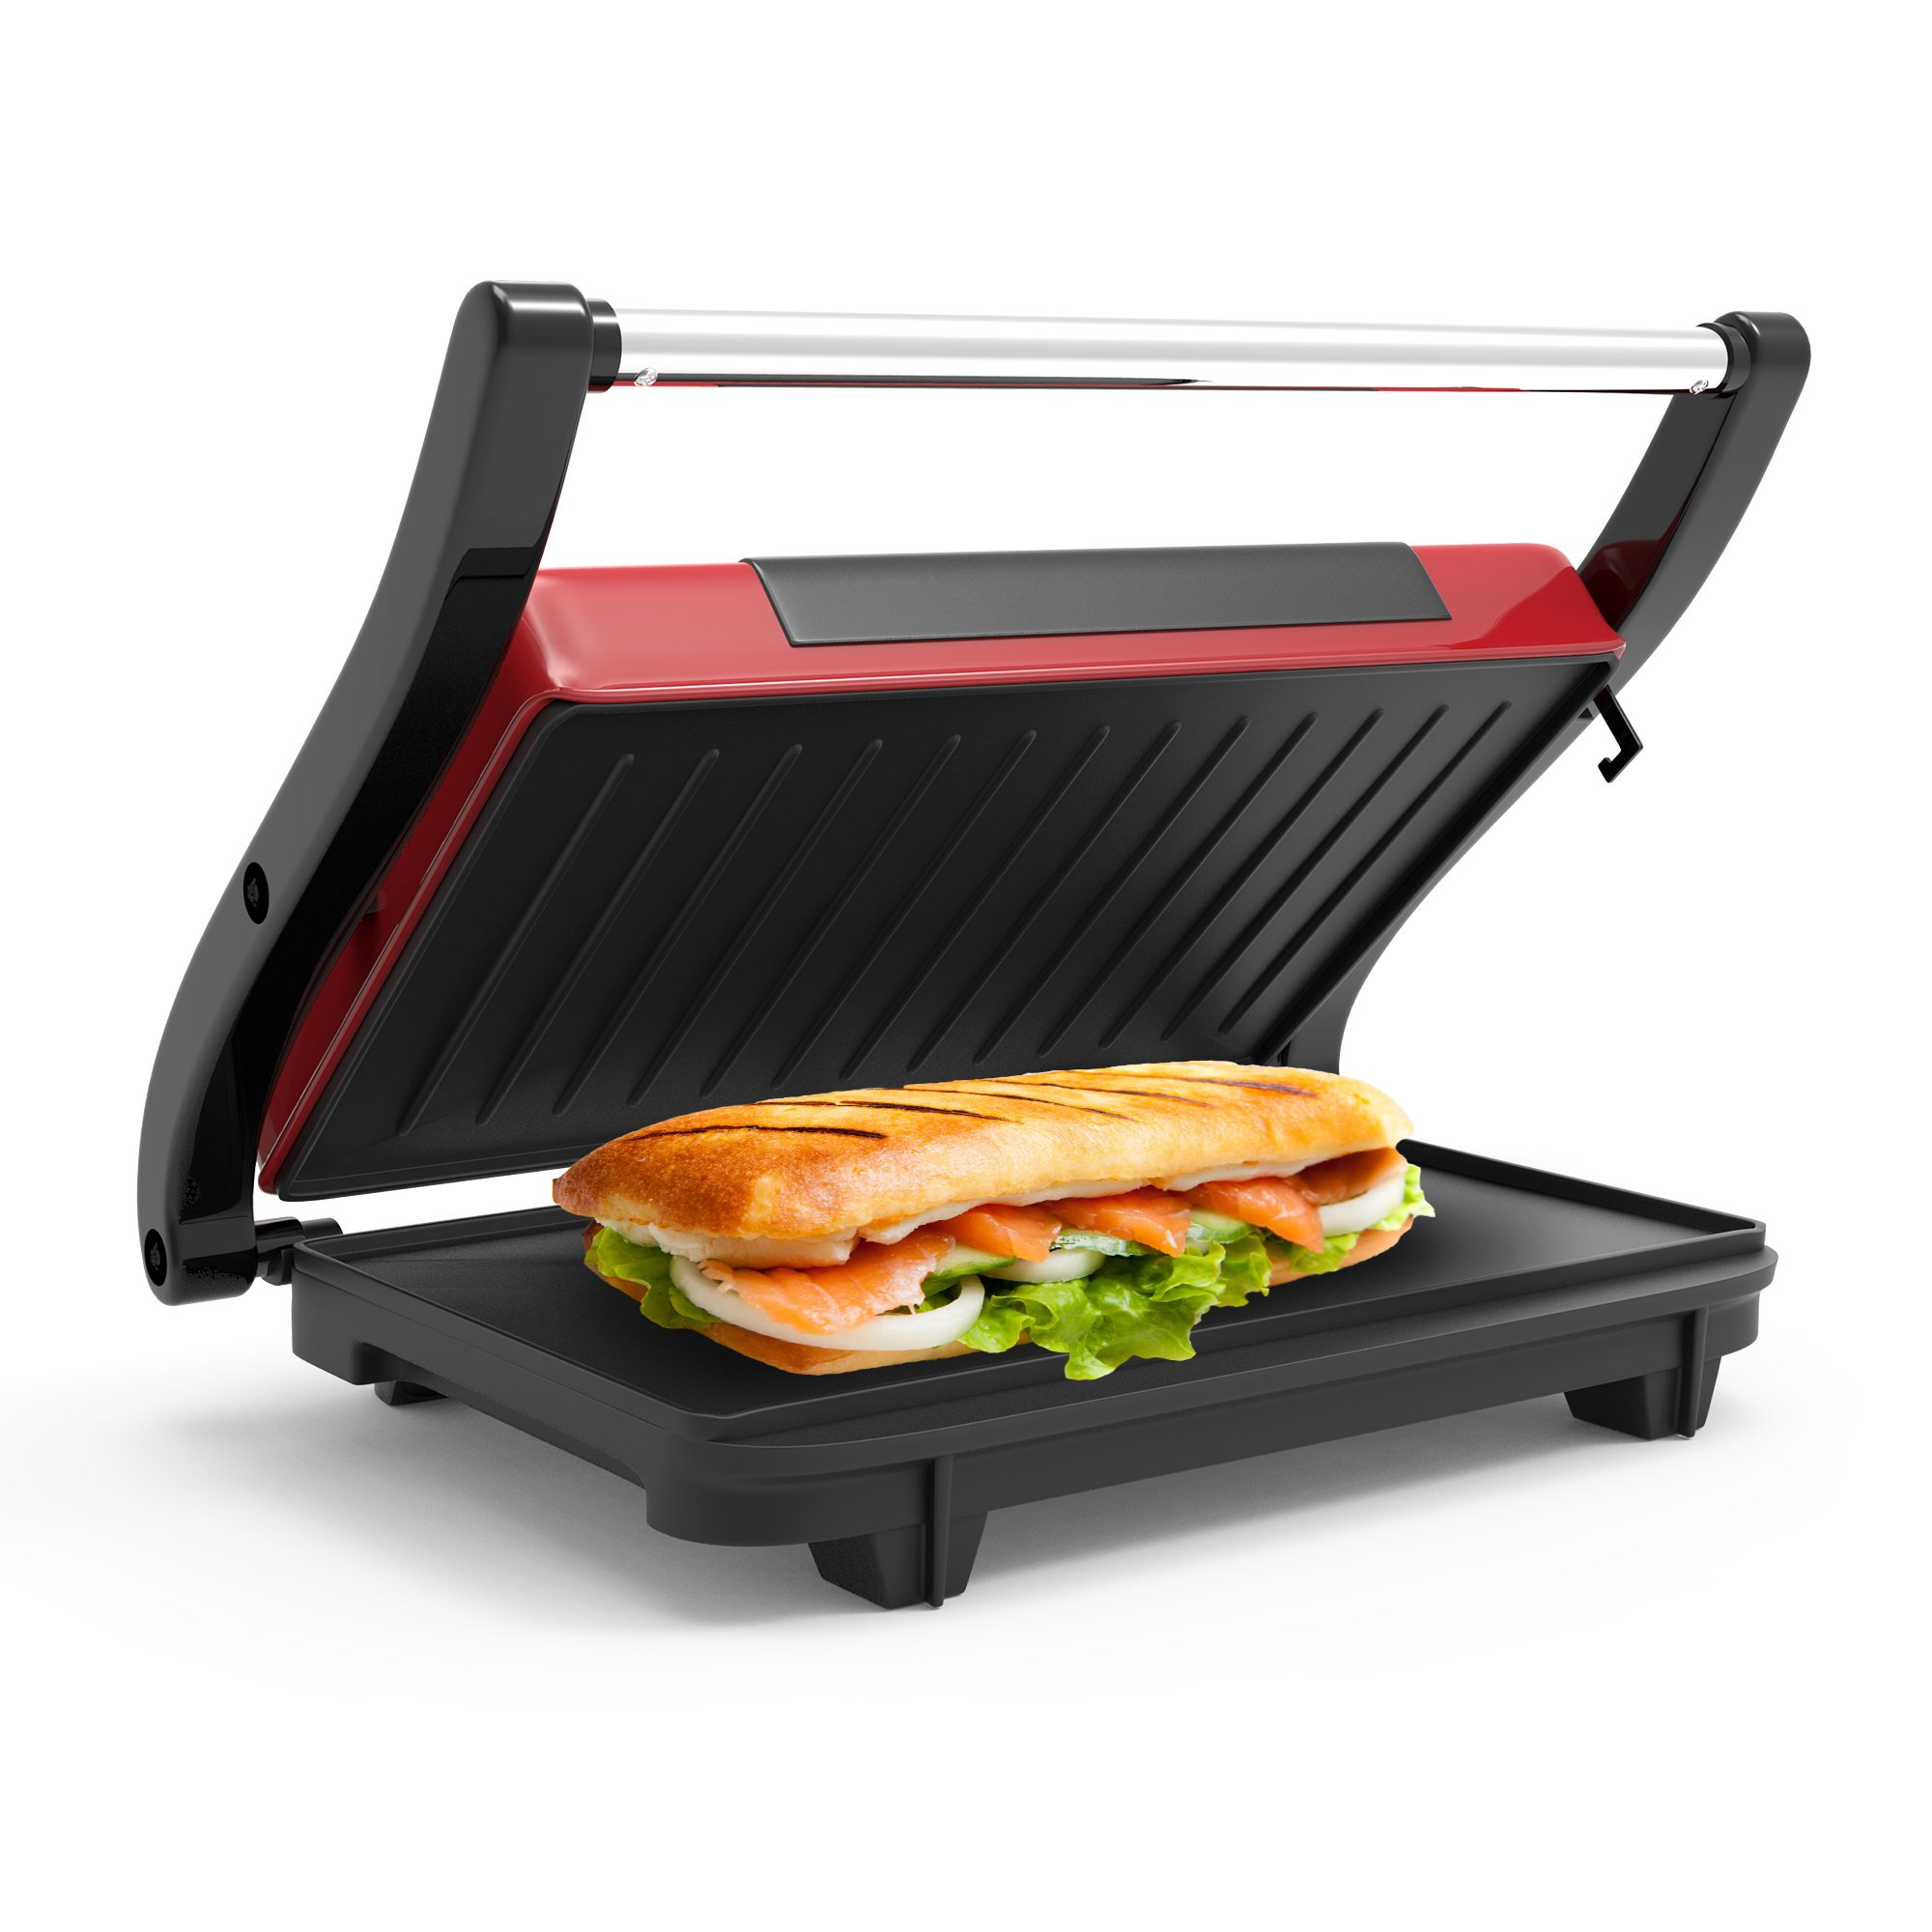 Panini Press Indoor Grill and Gourmet Sandwich Maker With Nonstick Plates (Red) by Chef Buddy by Chef Buddy